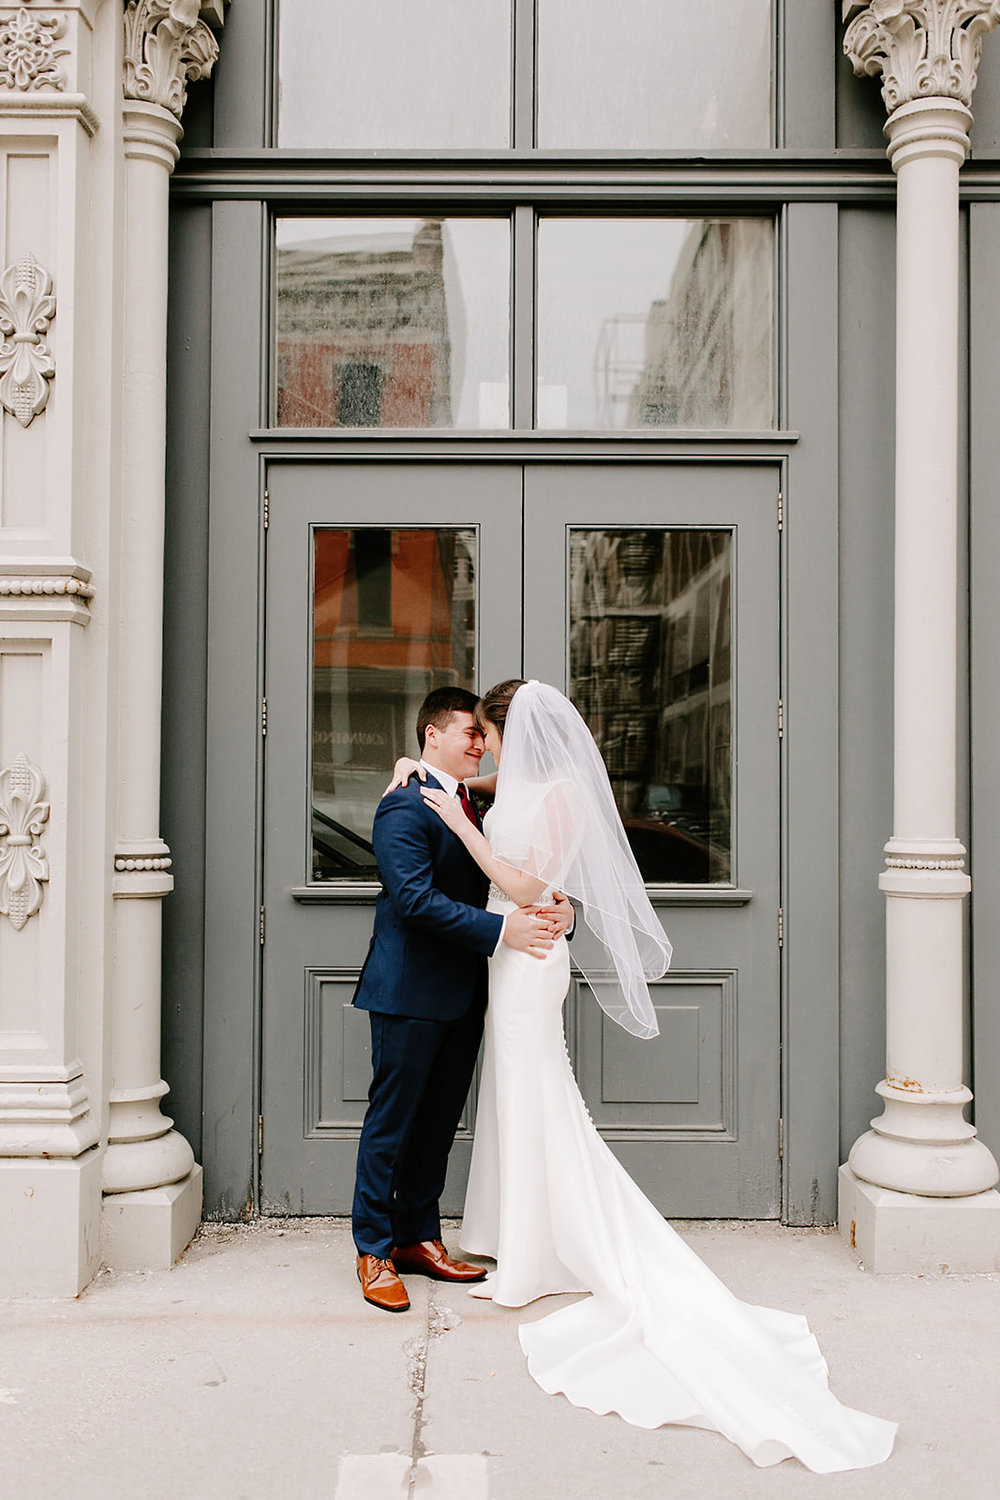 Emily and Davis_ Wedding at Vision Loft Indy in Indianapolis Indiana by Emily Elyse Wehner Photogrpahy LLC-132.jpg